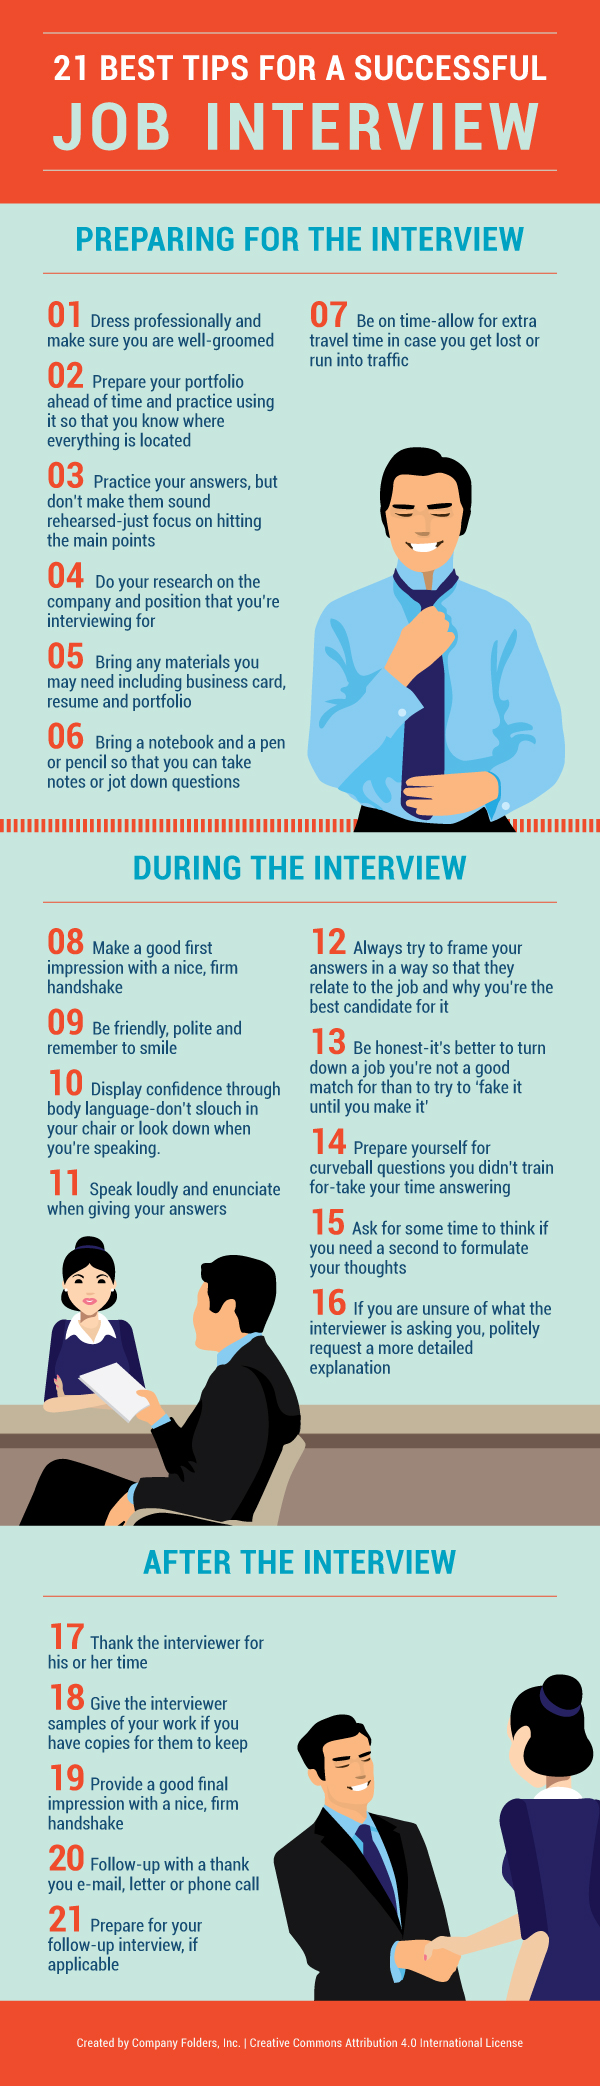 21 Best Interview Tips: Common Questions & Best Answers